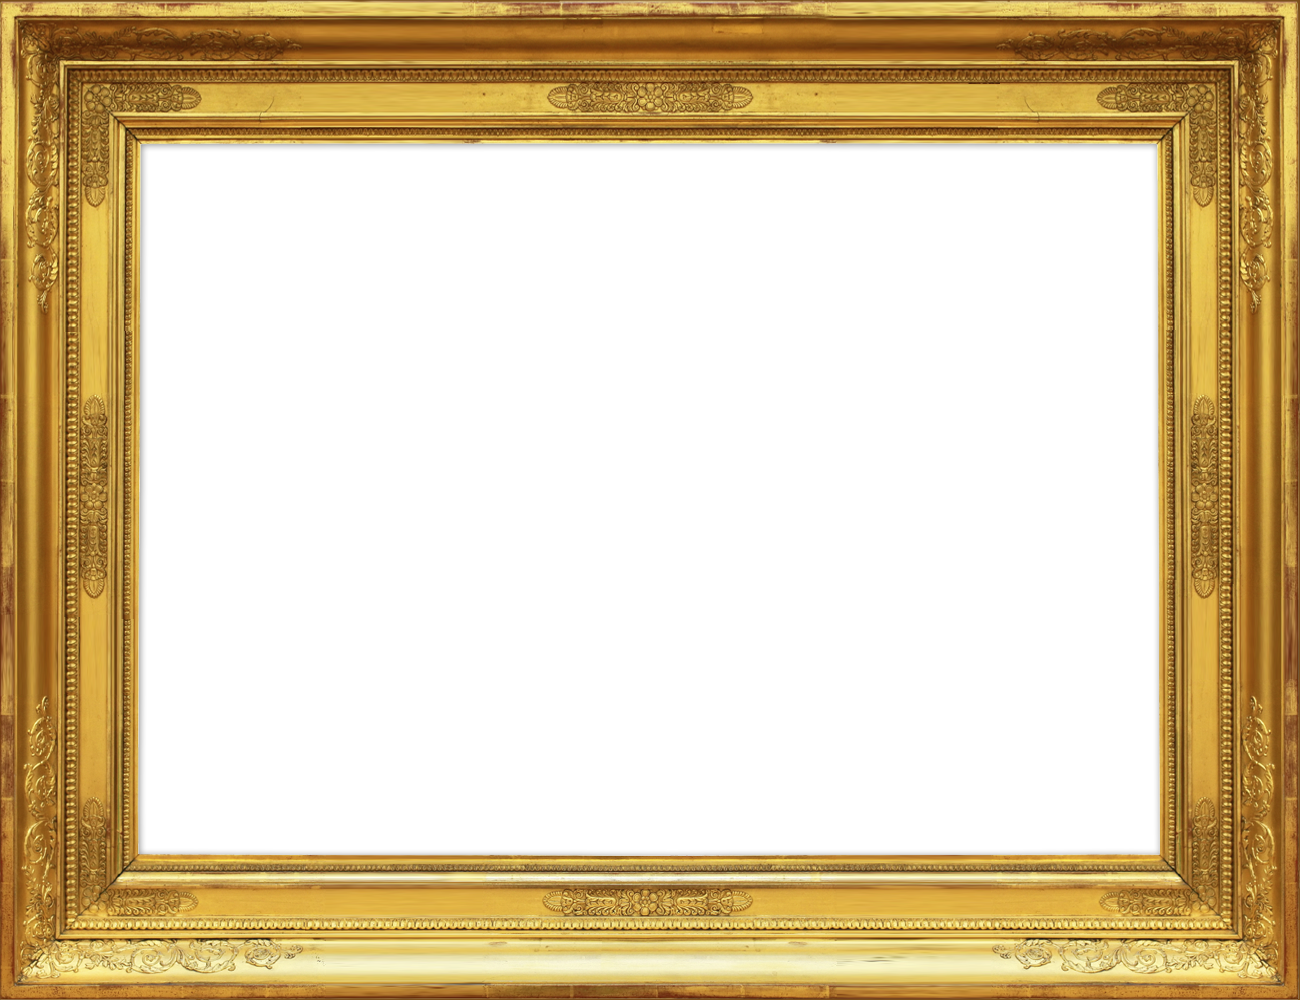 Photo Frame Background Png image #24571